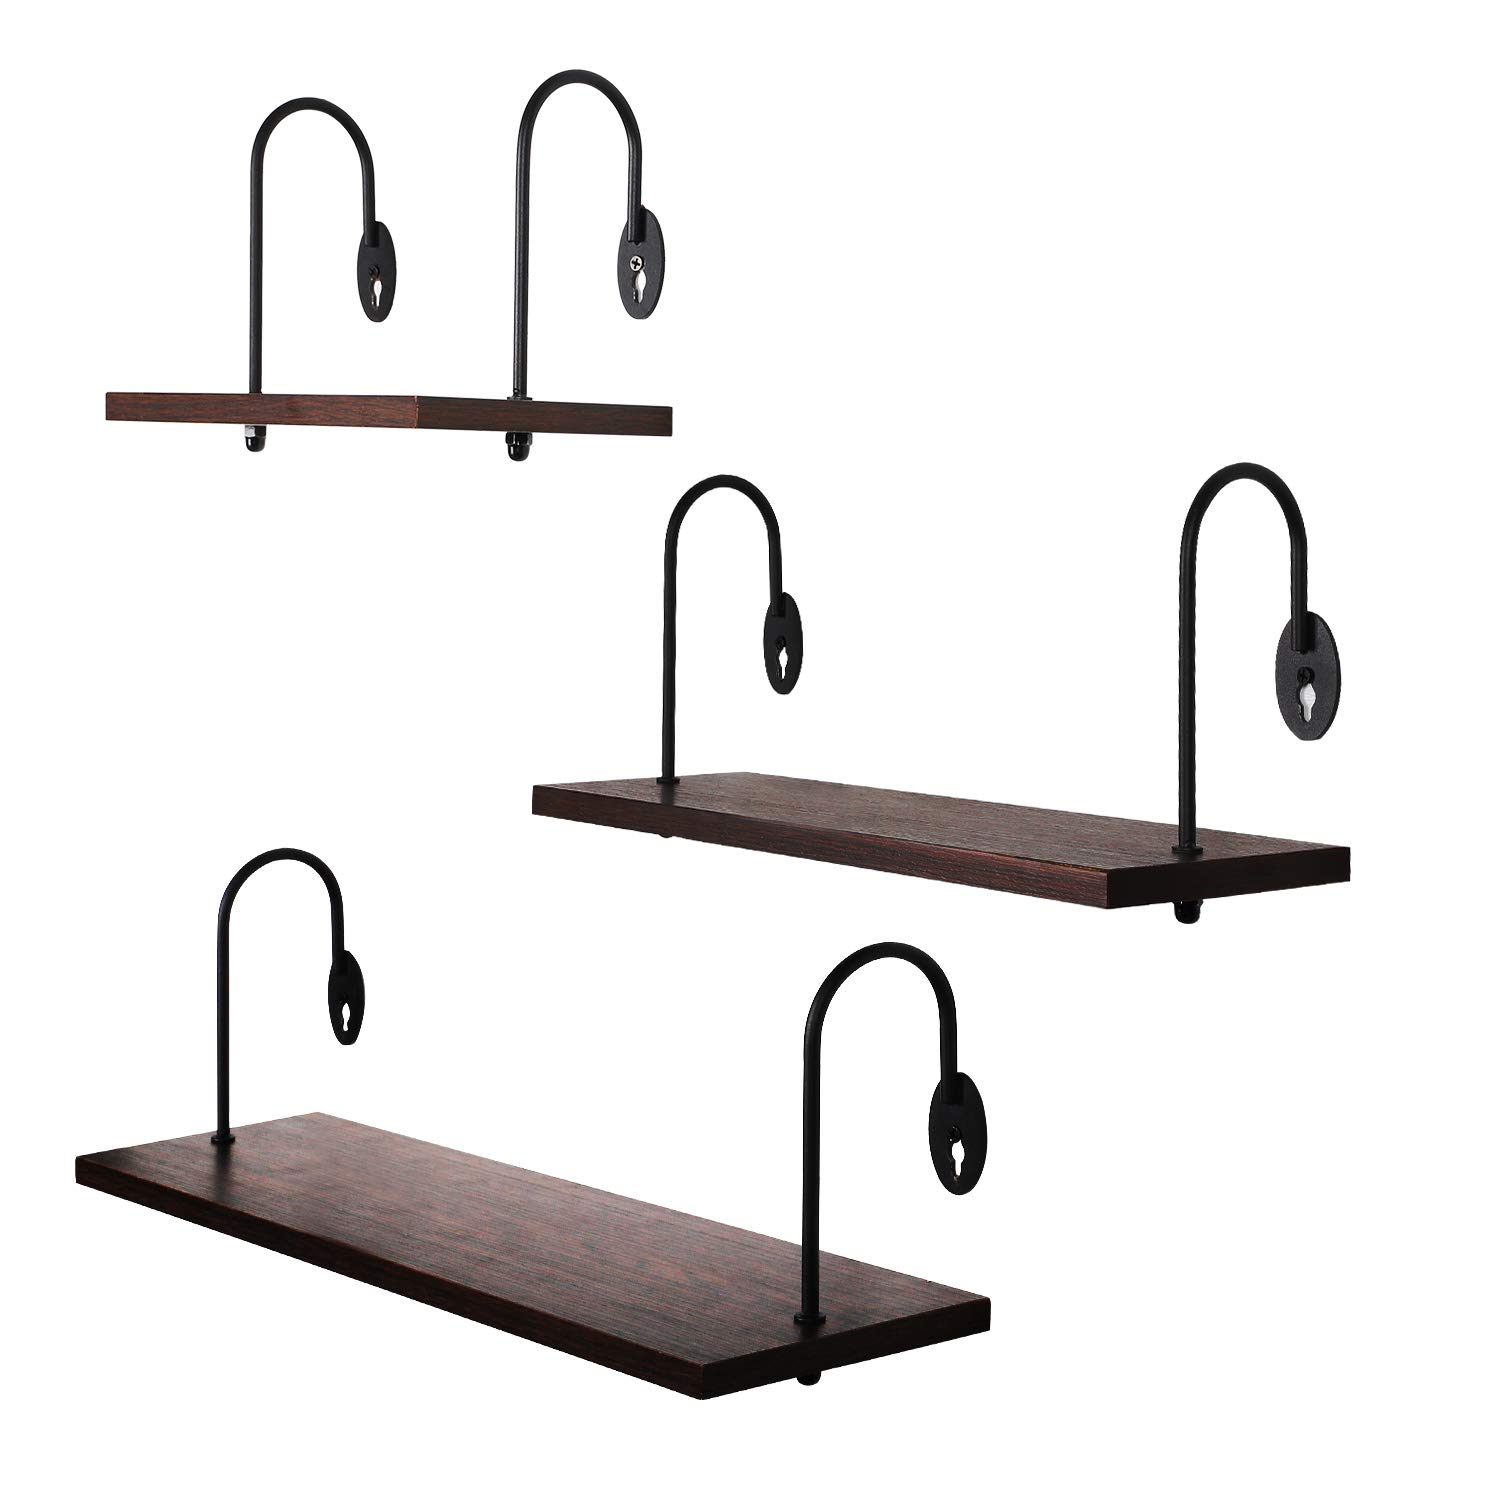 Olakee Floating Shelves Wall Mounted Rustic Wood Wall Shelves Set of 3 for Bedroom Bathroom Kitchen Office Walnut by Olakee